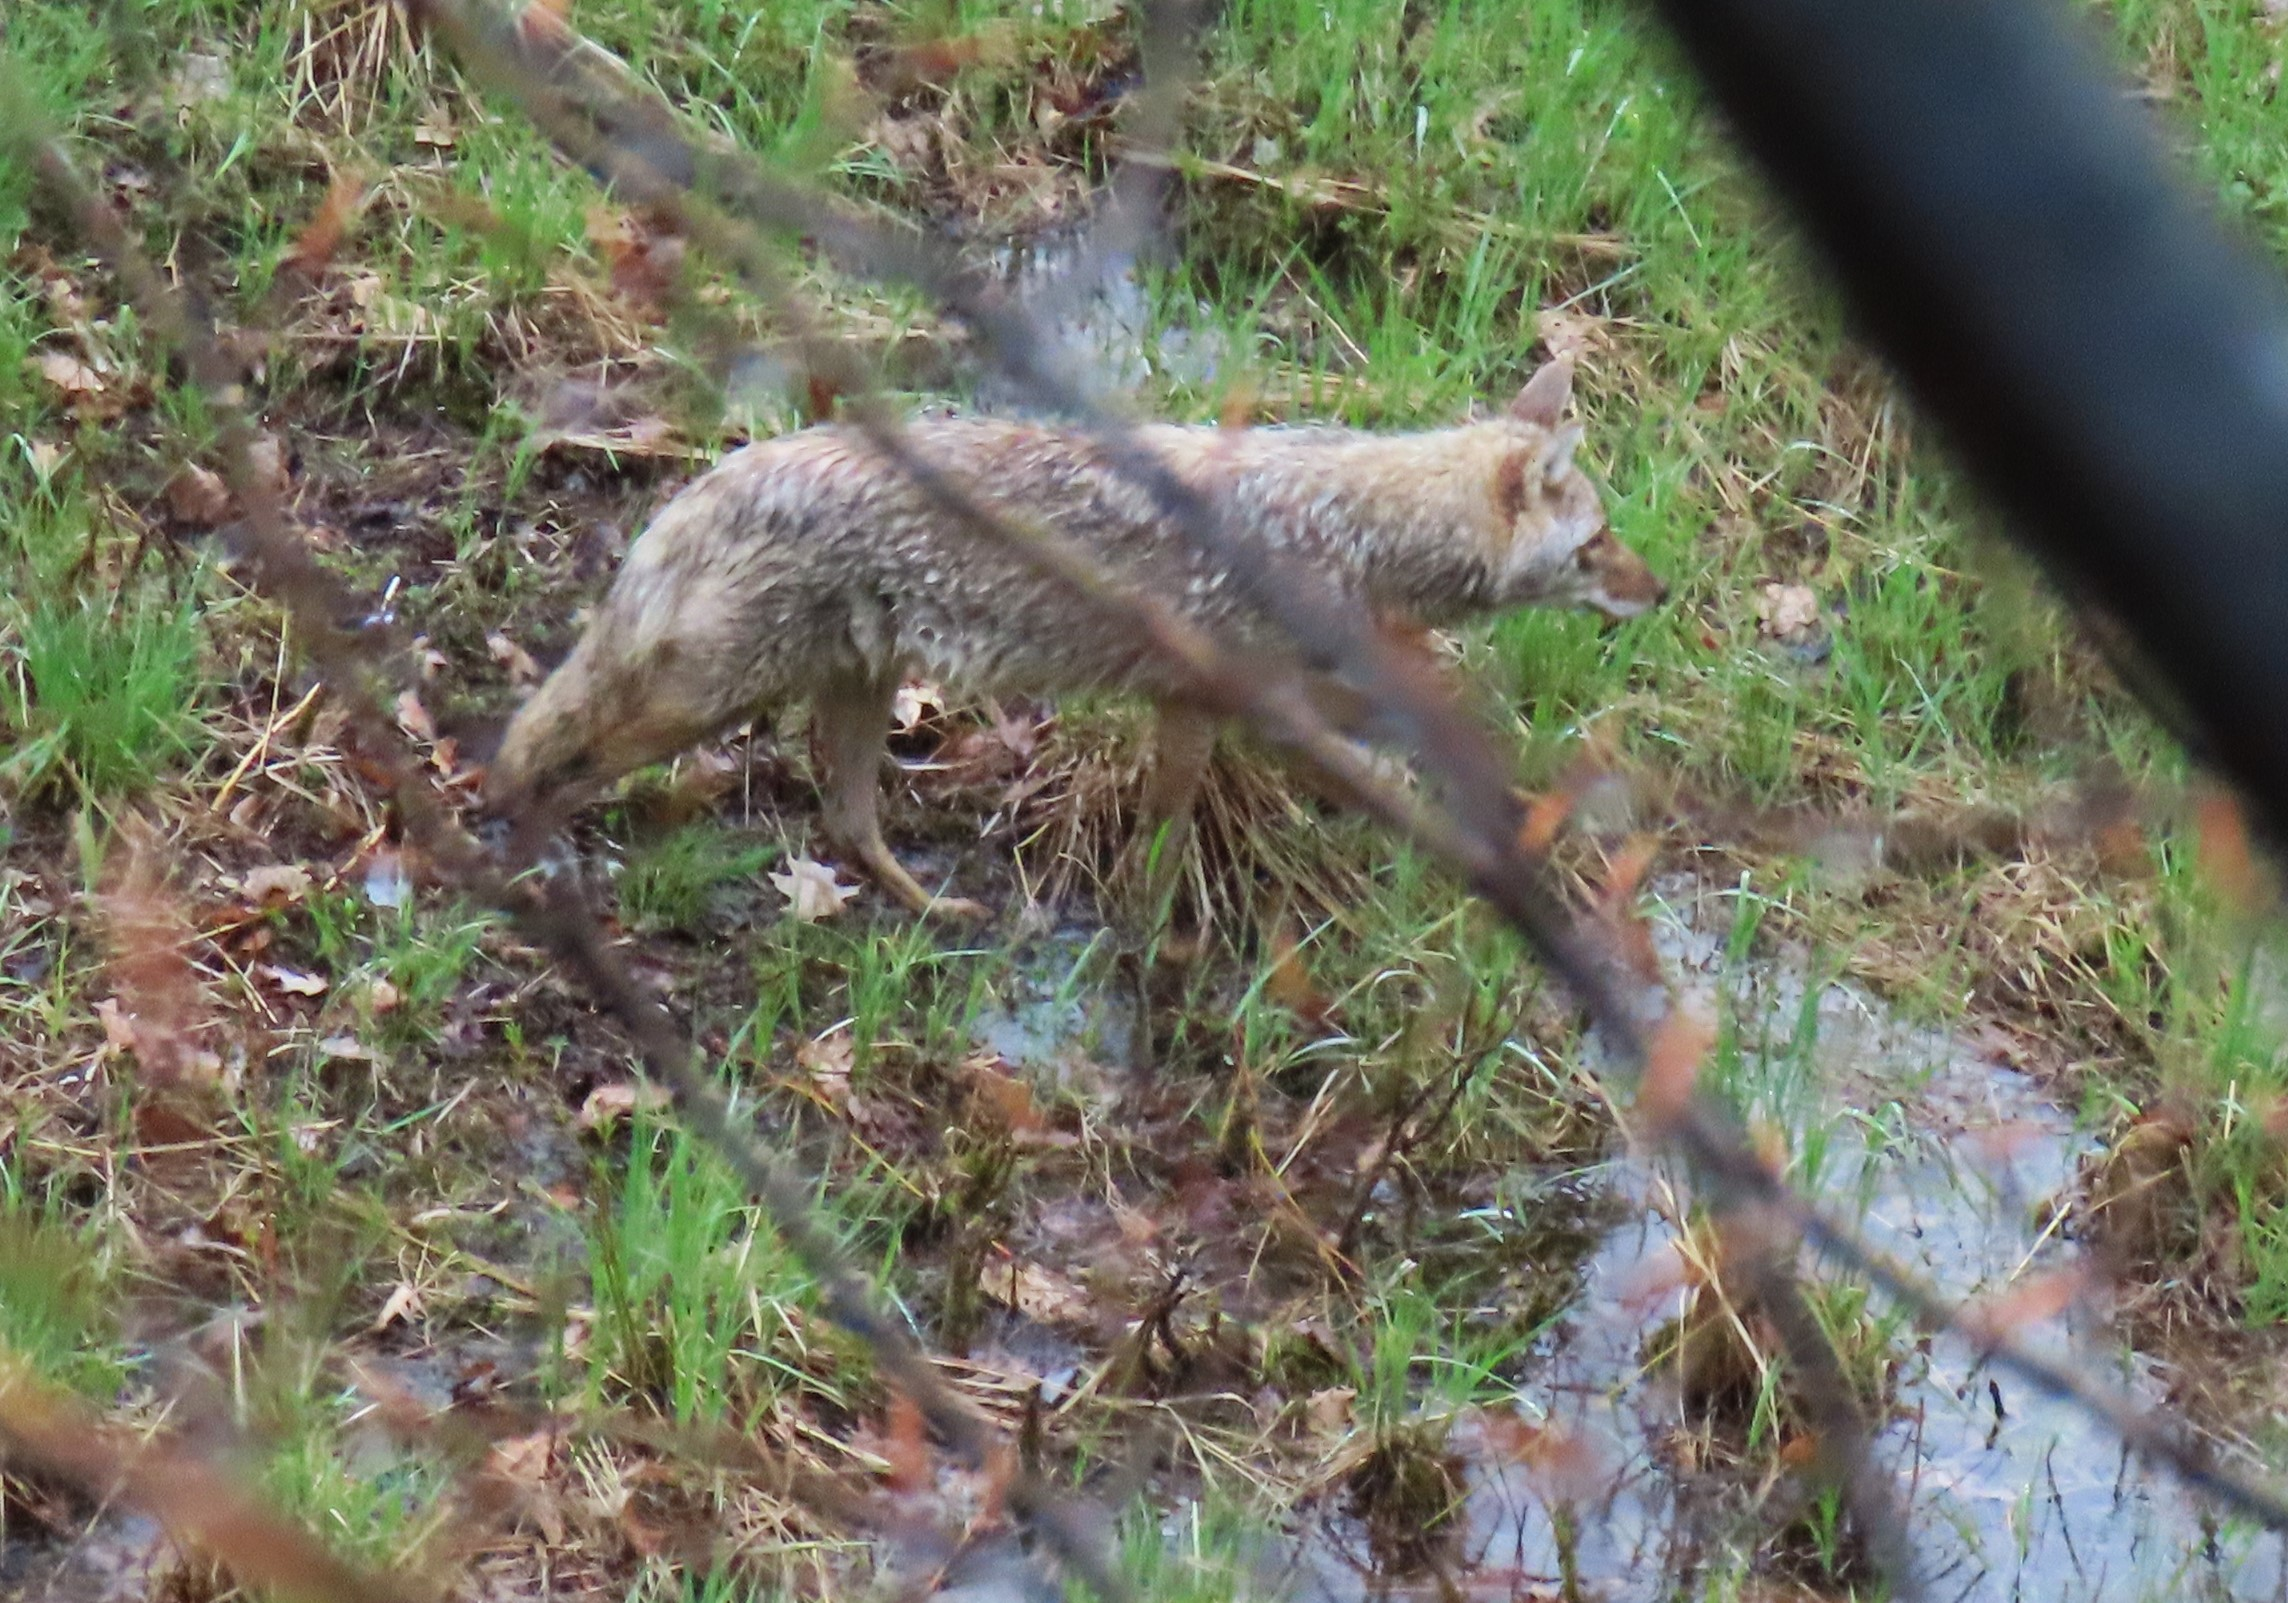 A photo (taken from above) of an eastern coyote walking through a grassy area